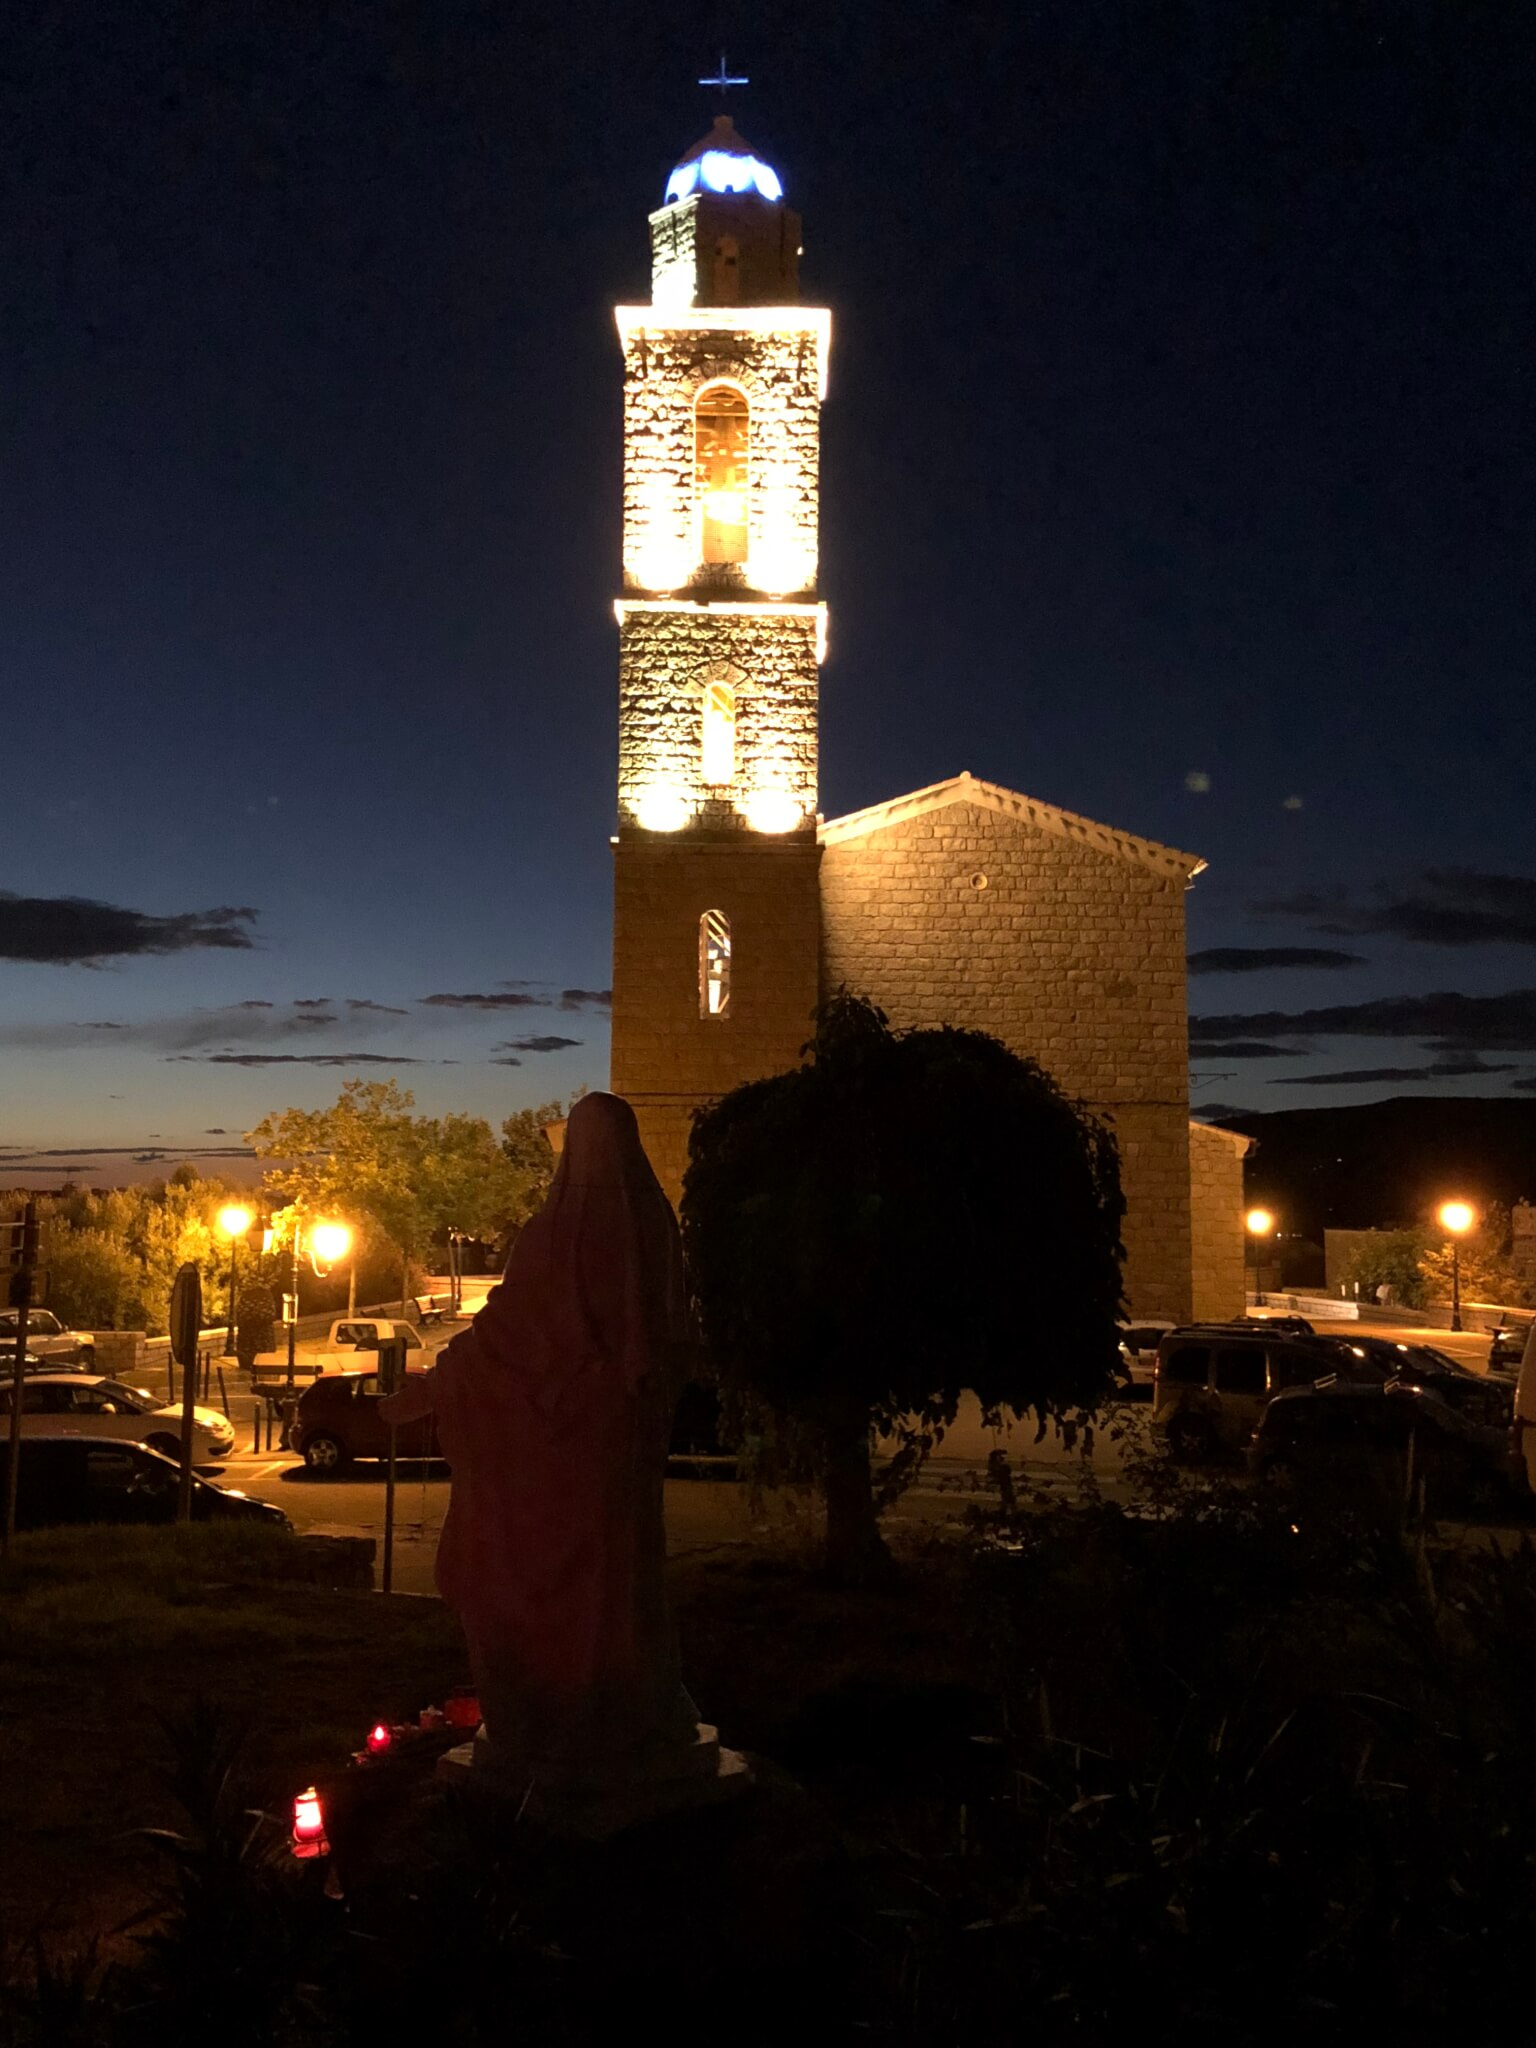 Eglise Propriano nuit